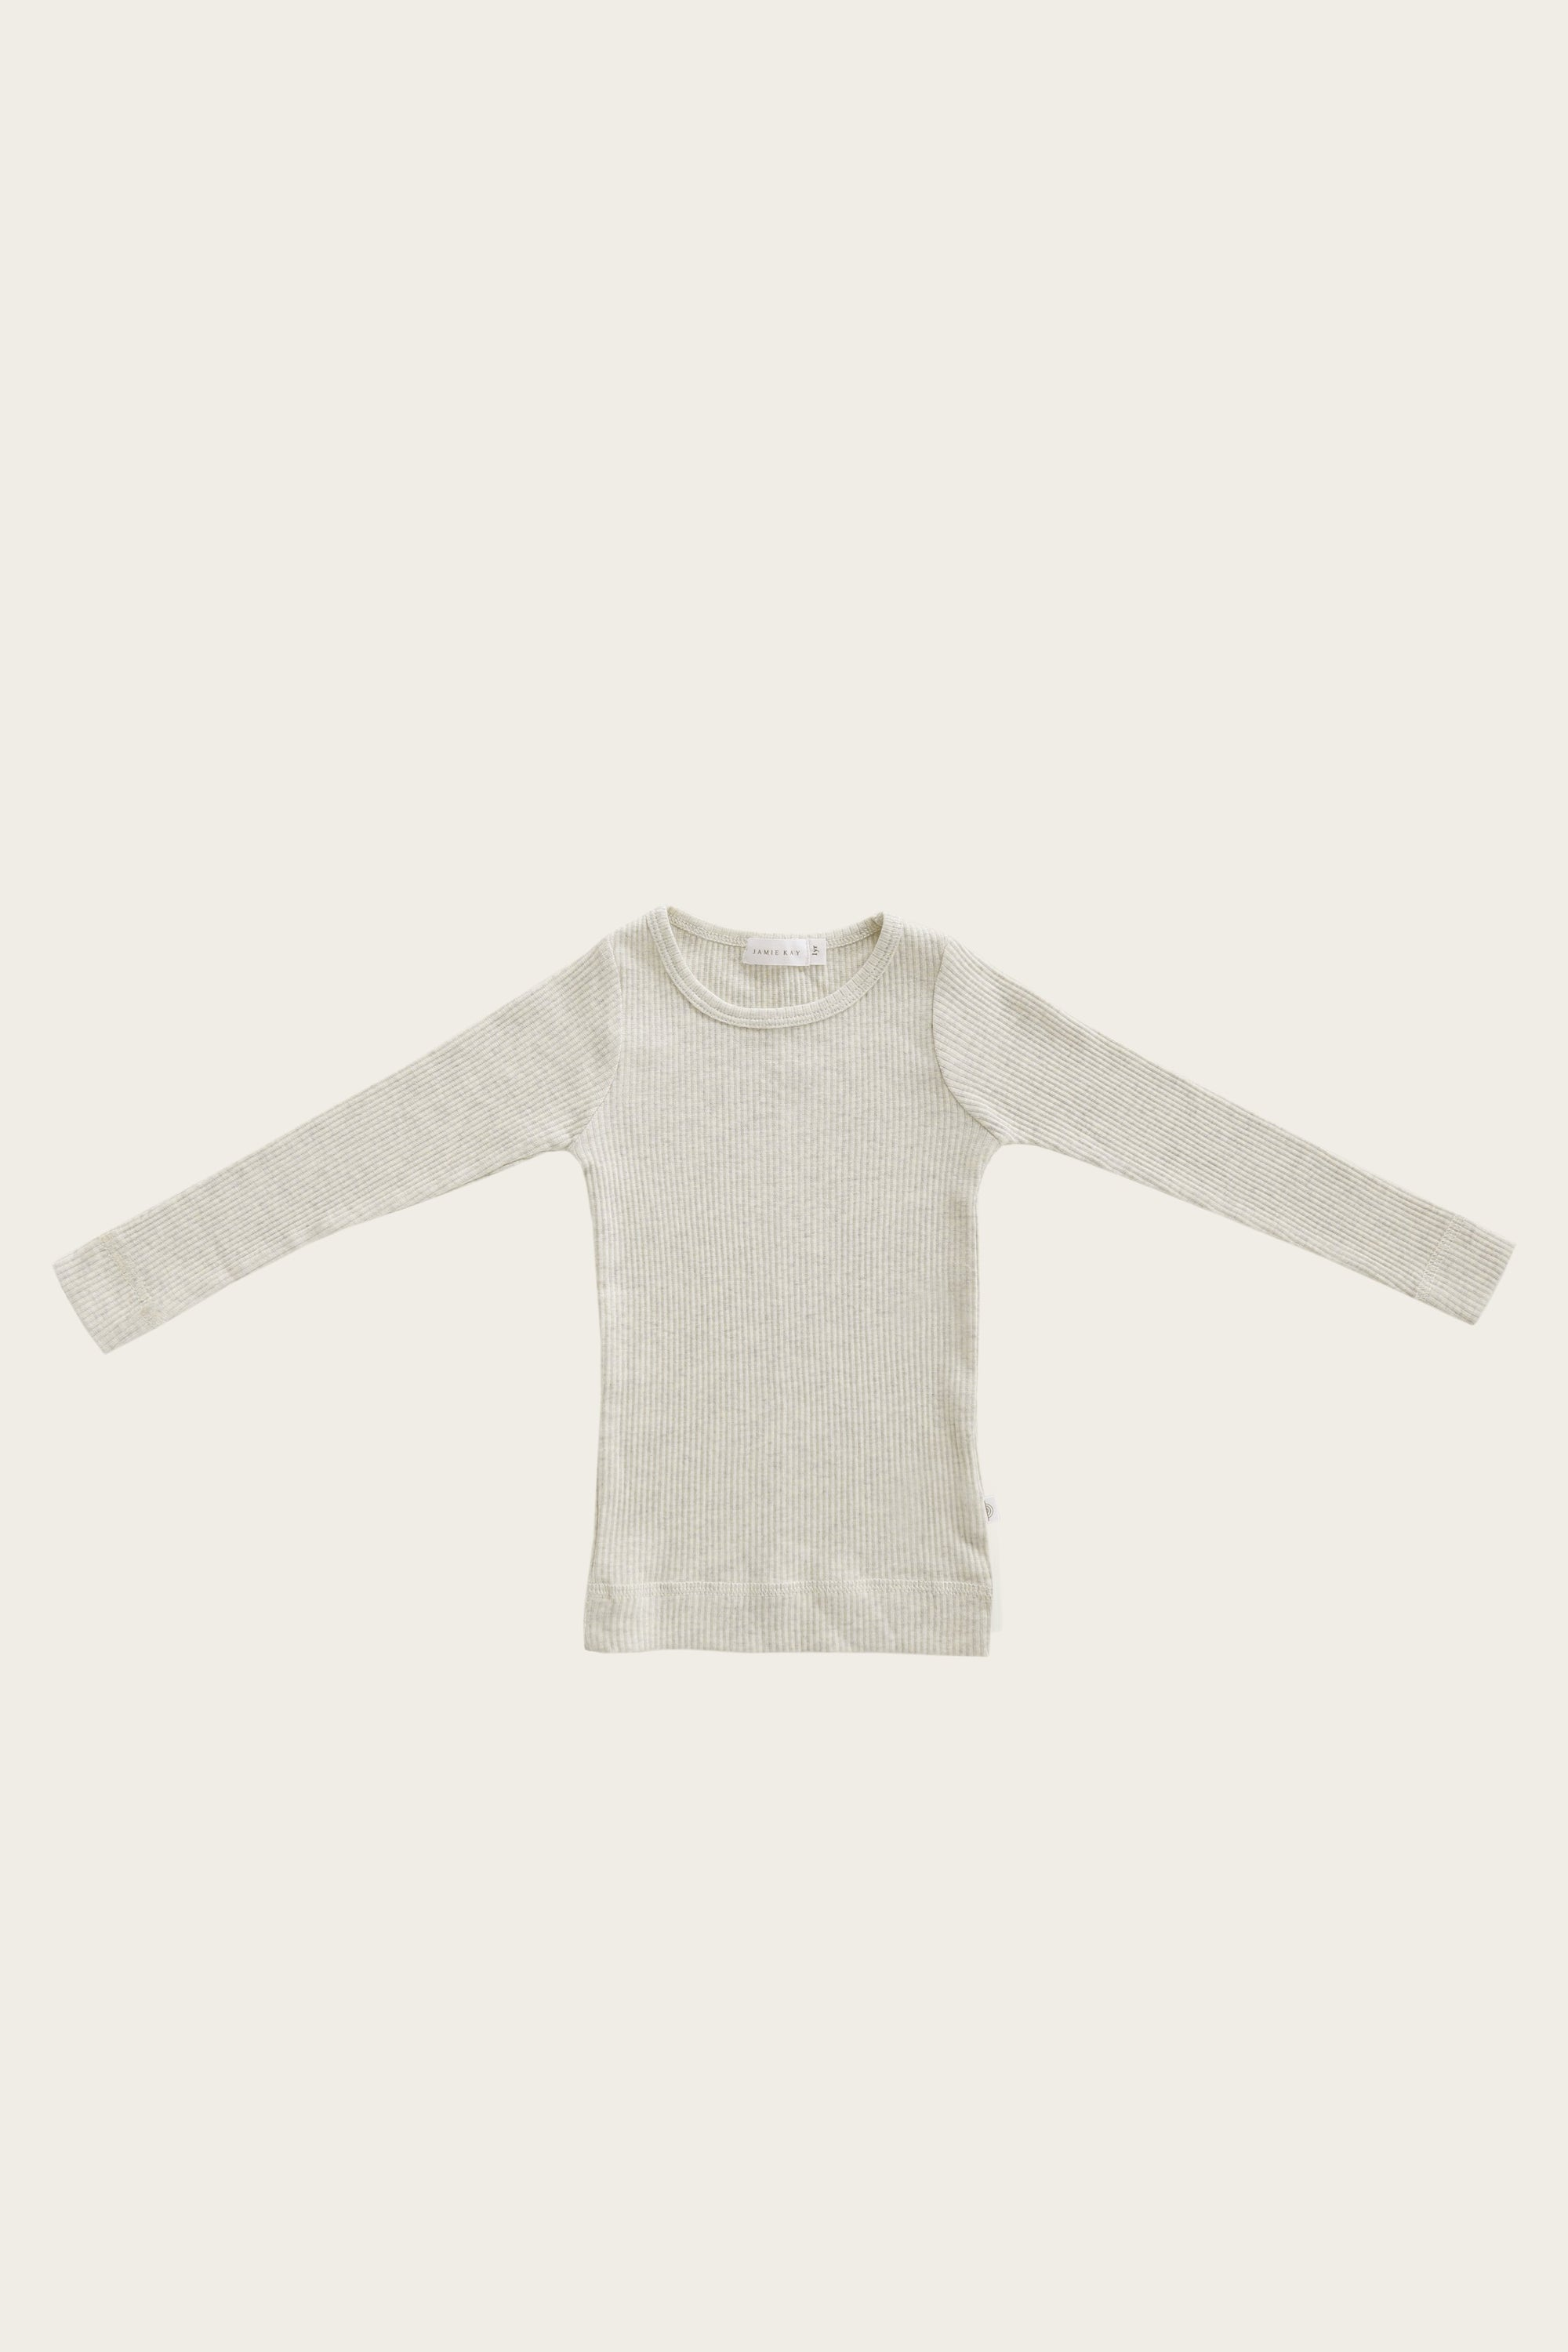 Jamie Kay Organic Essential Long Sleeve Top, Oatmeal Marble